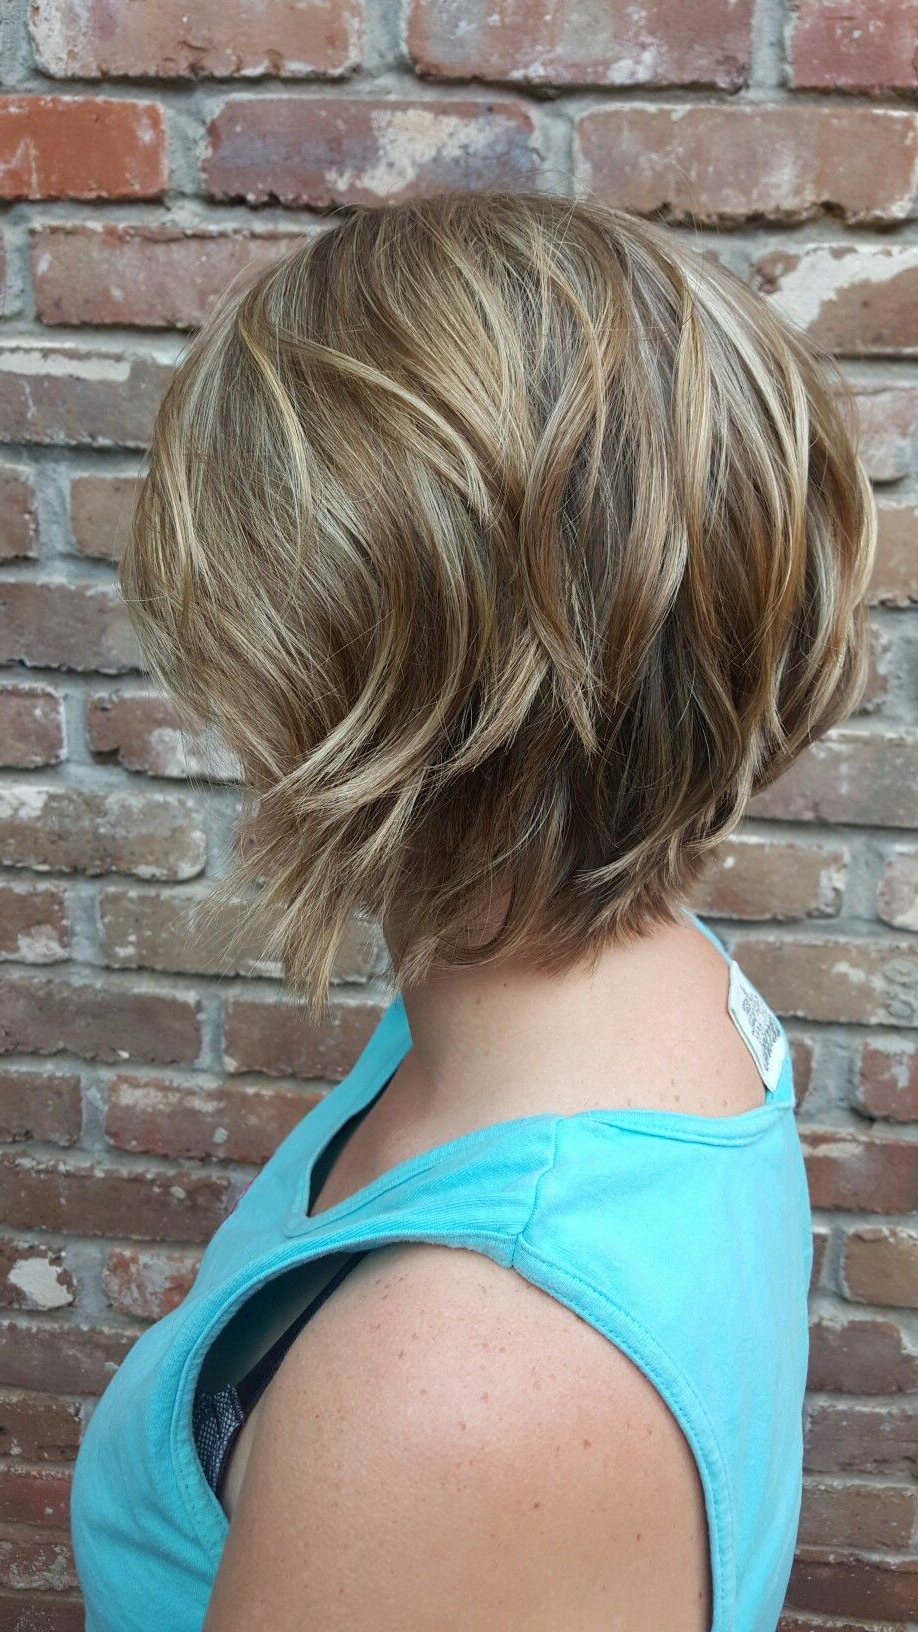 Lots Of Layers. Sassy Short Haircut … | Hair Styles In 2018… Inside Over 50 Pixie Hairstyles With Lots Of Piece Y Layers (Gallery 8 of 20)